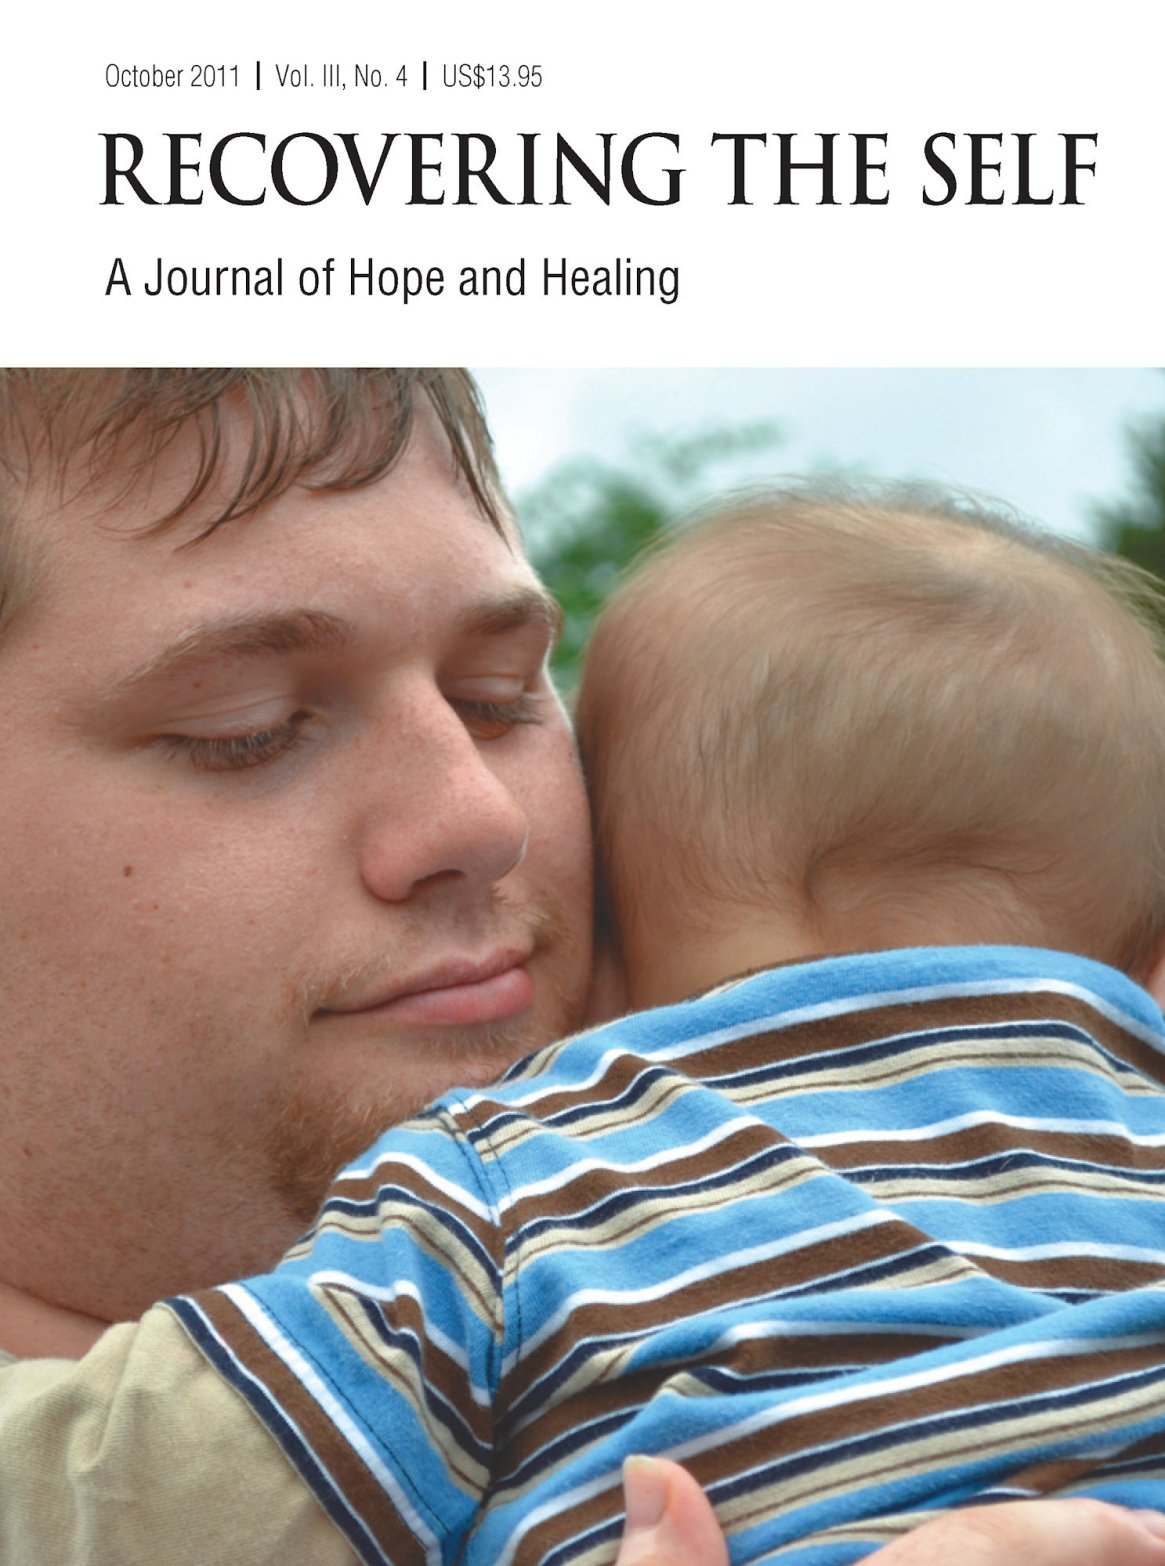 Recovering The Self: A Journal of Hope and Healing (Vol. III, No. 4) -- Focus on Parenting 978-1-61599-128-0